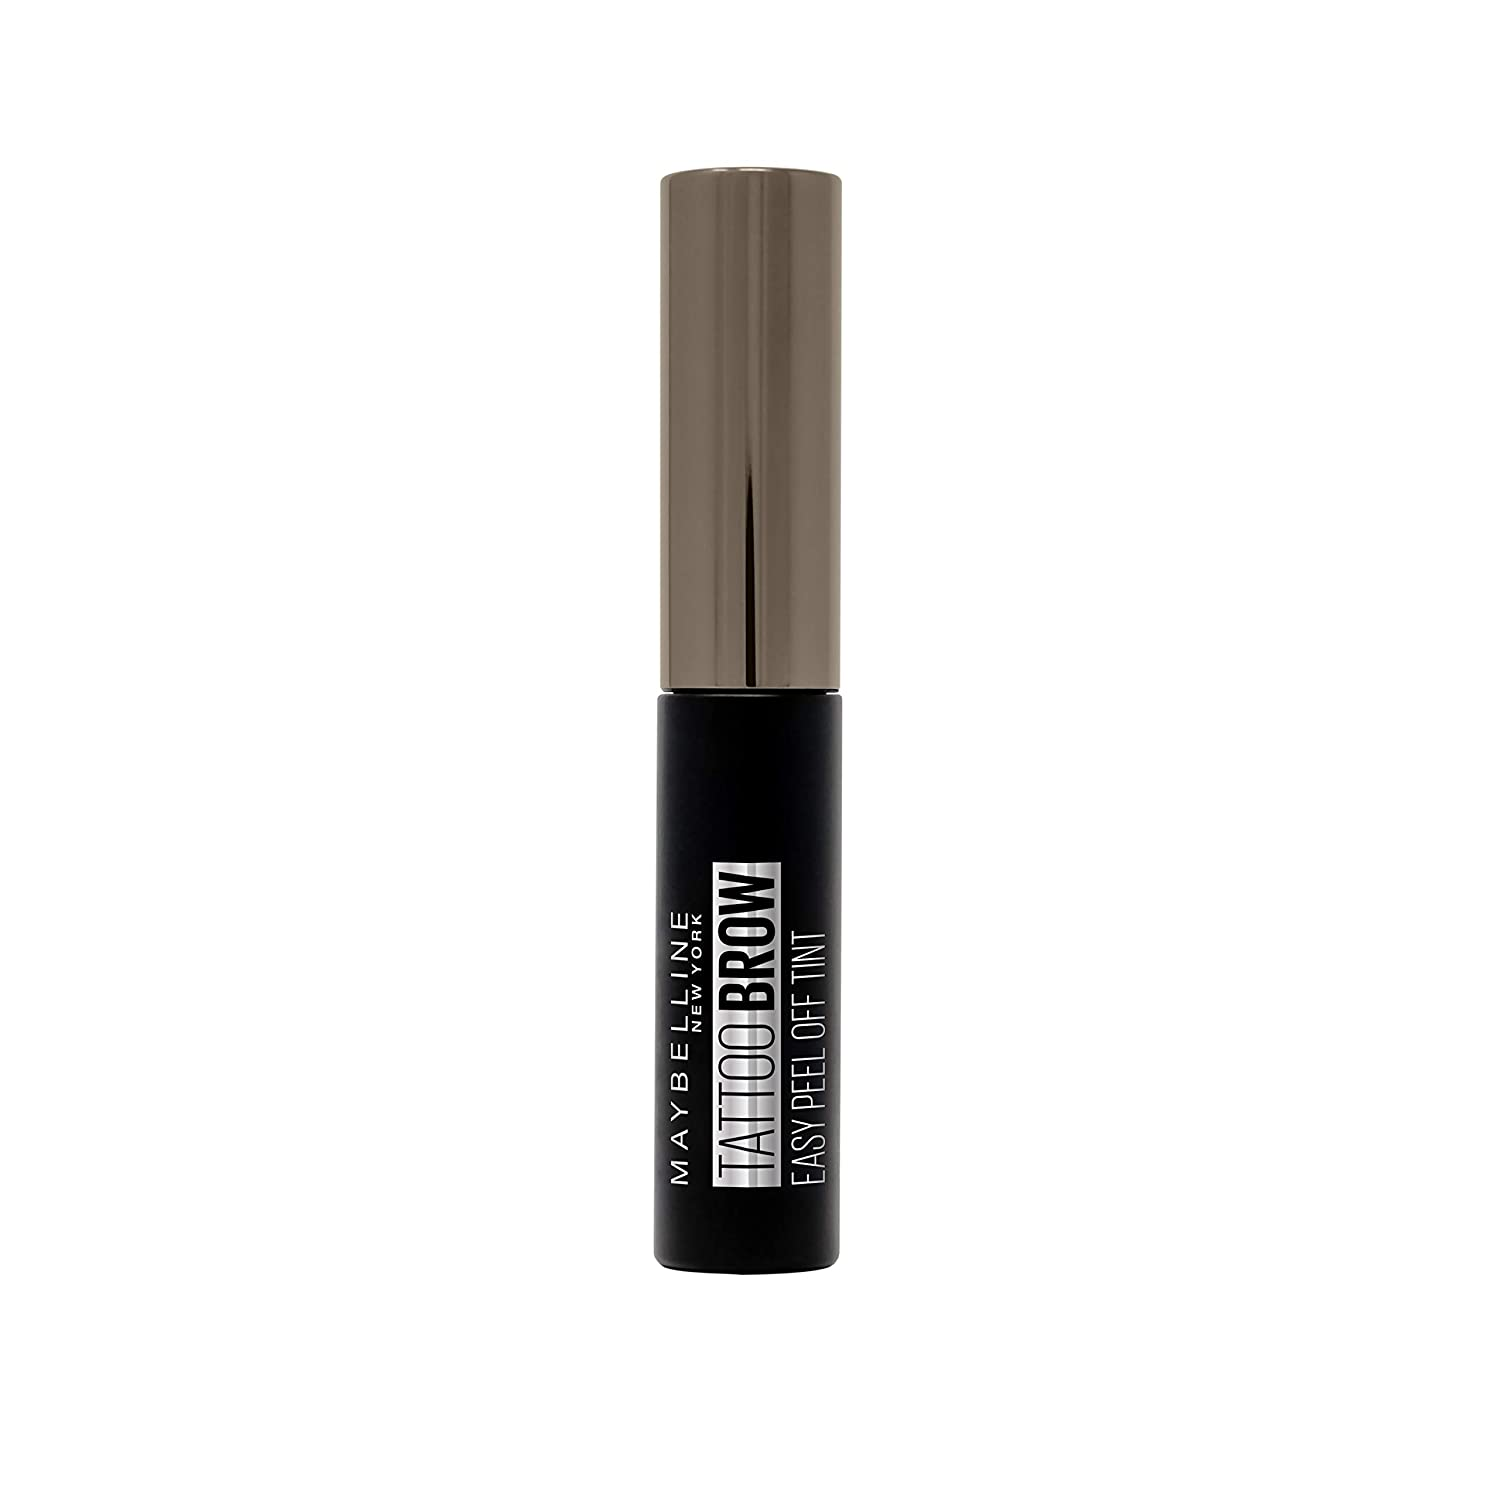 Maybelline New York Tinta per Sopracciglia Peel-off Tattoo Brow Risultato Definito fino a 3 Giorni, 2 Medium Brown B2998500